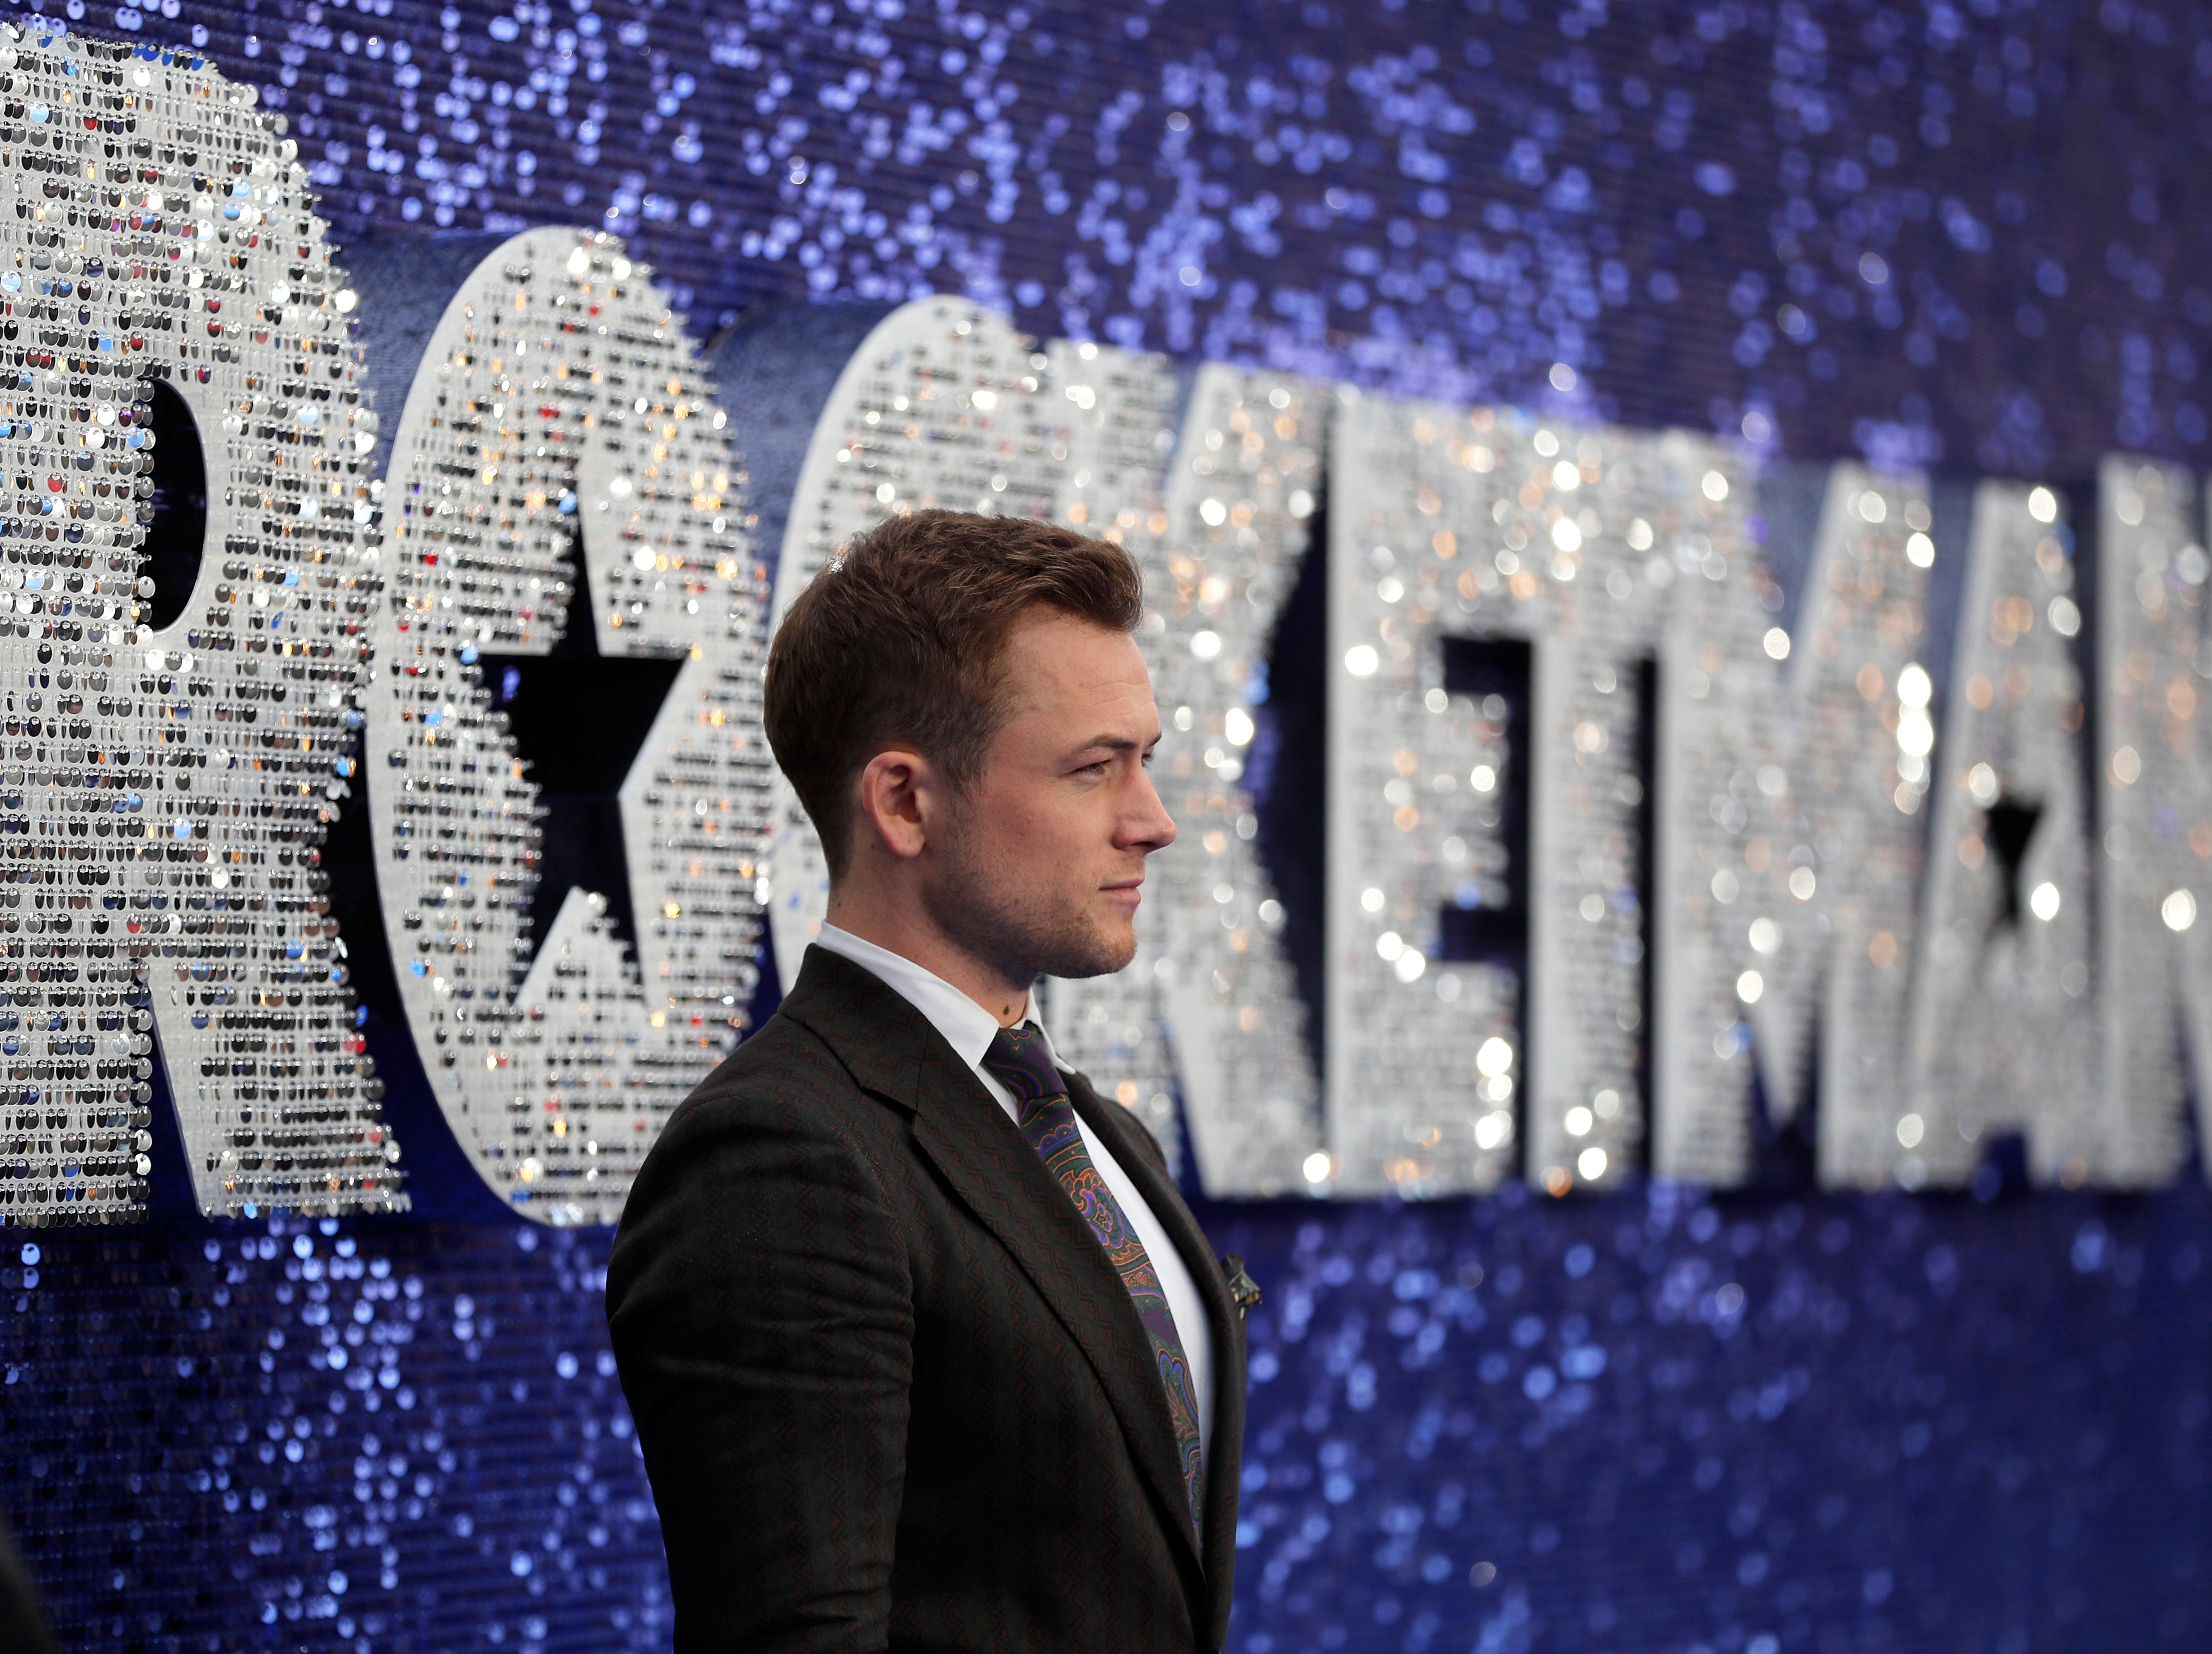 Taron Egerton arrives for the UK Film Premiere of Rocketman at the Odeon Luxe in London.